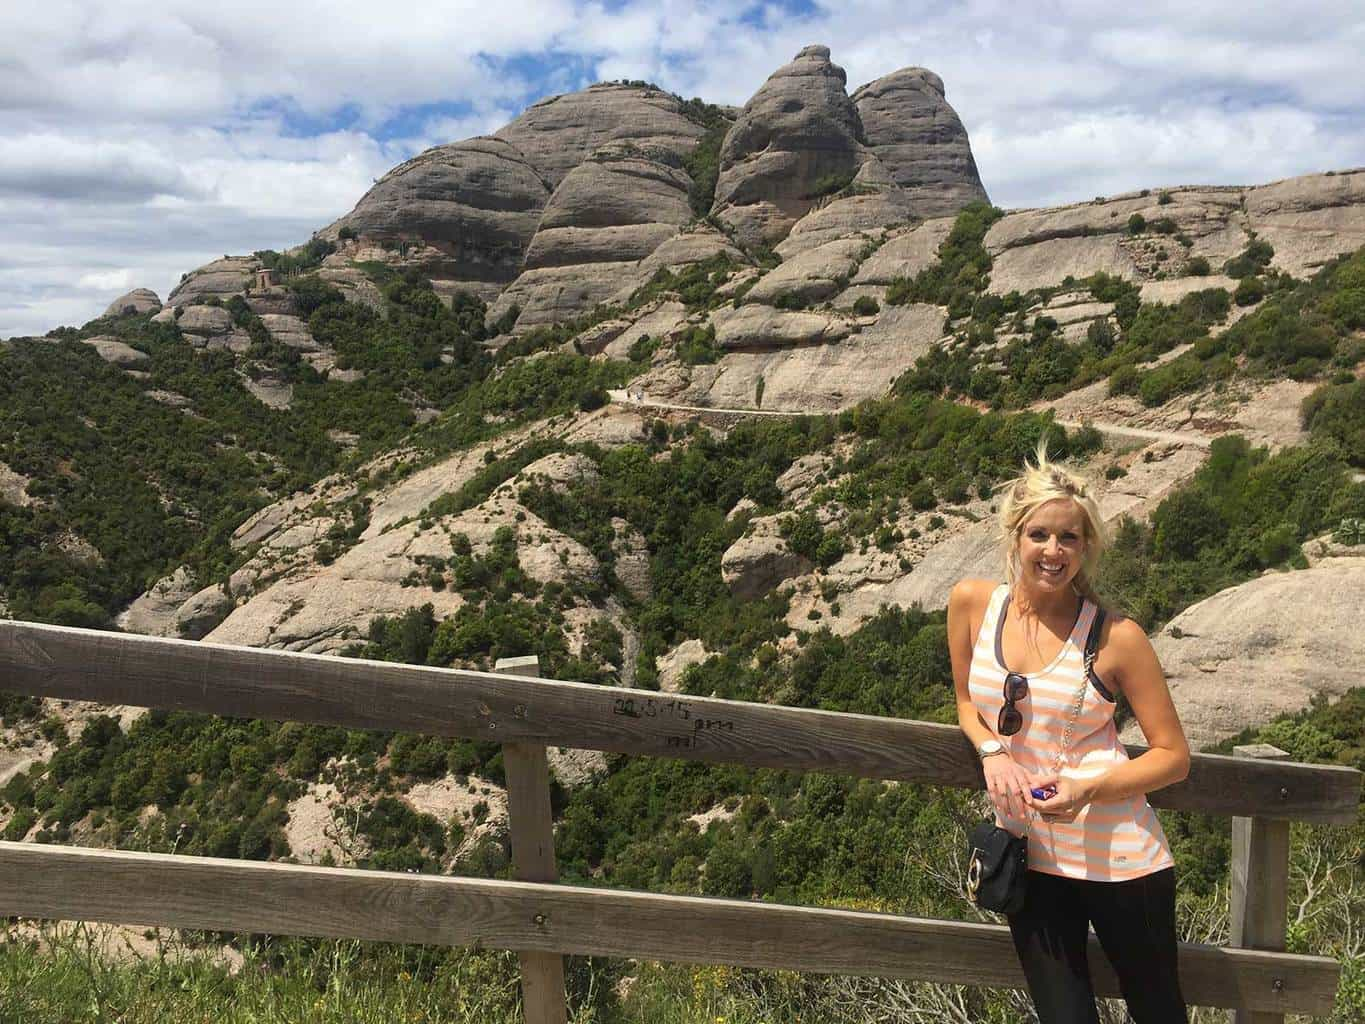 montserrat-spain-hiking-trails-near-barcelona-37